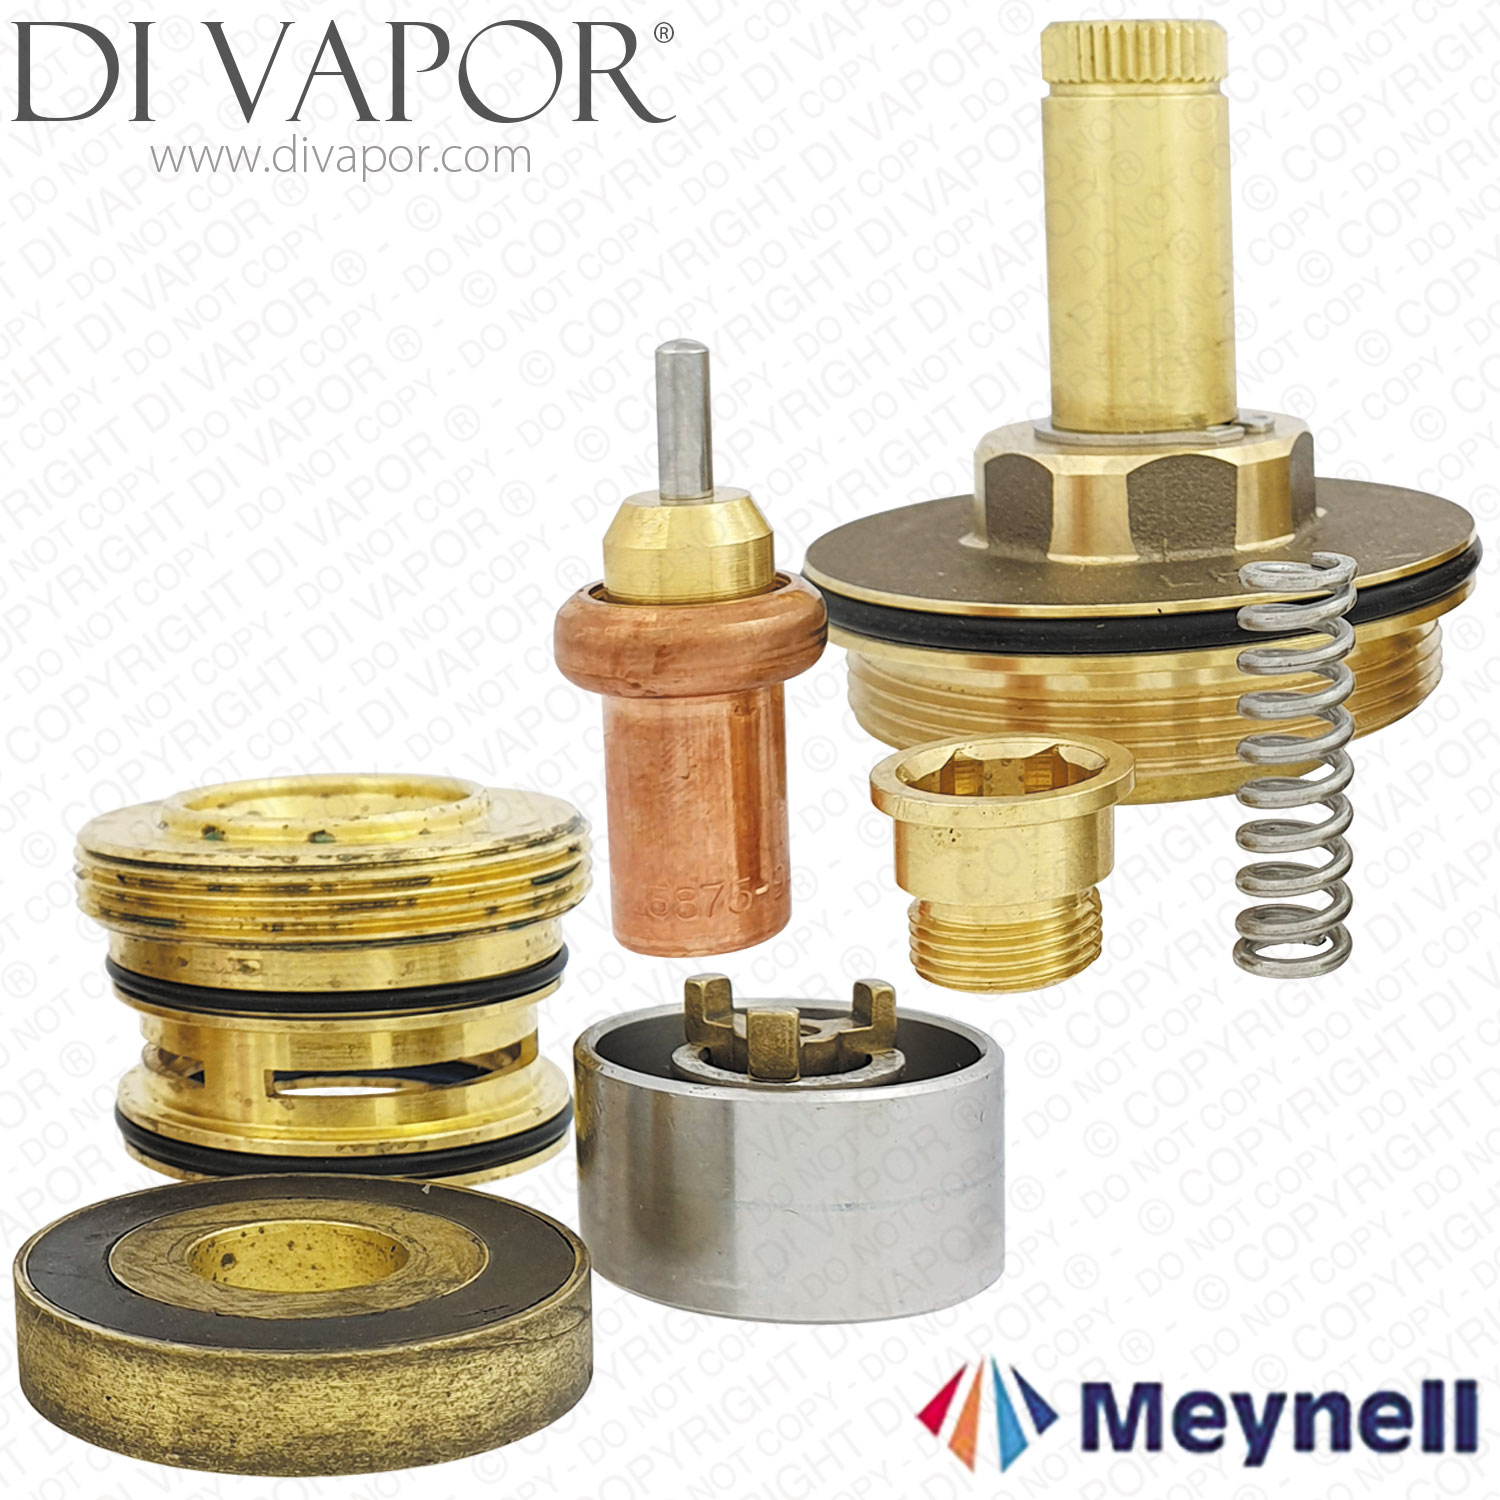 Meynell SPSM0275J Thermostatic Cartridge